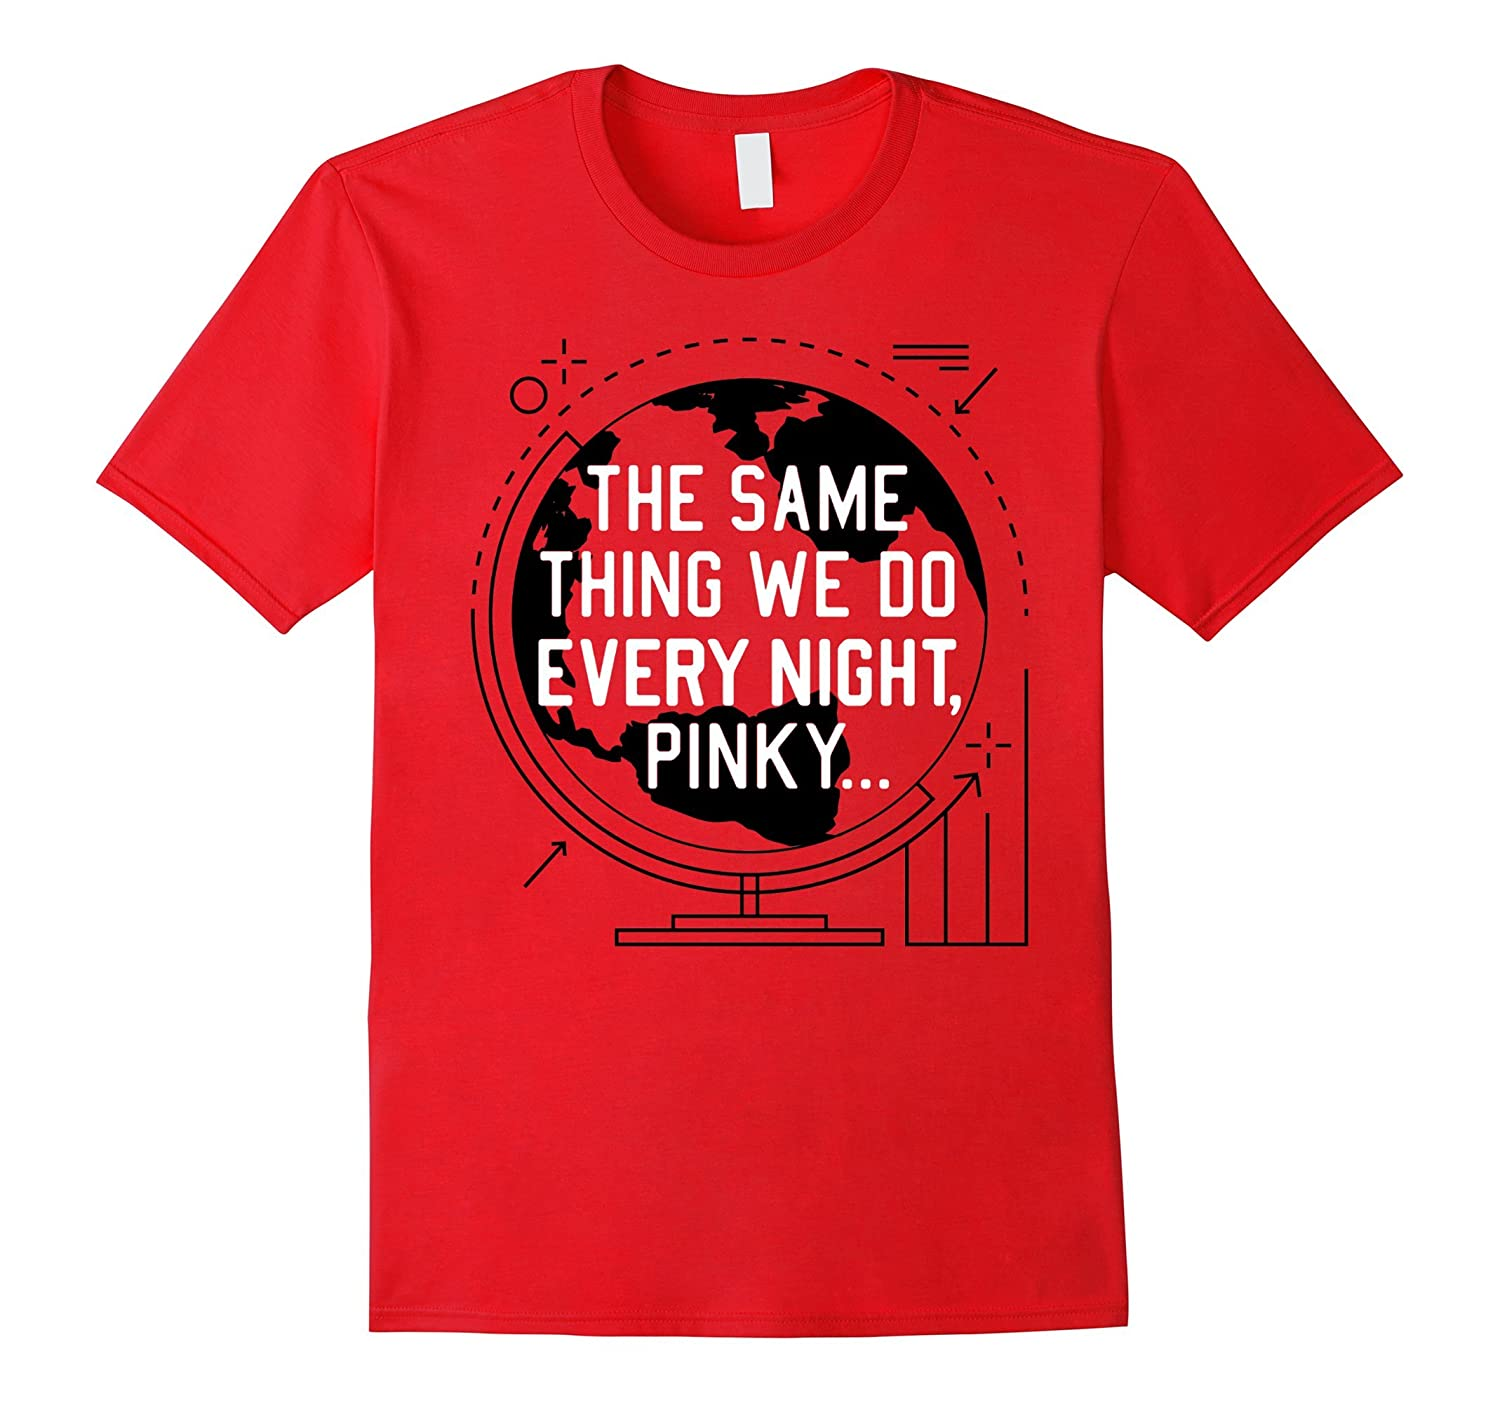 THE SAME THING WE DO EVERY NIGHT PINK SHIRT-PL